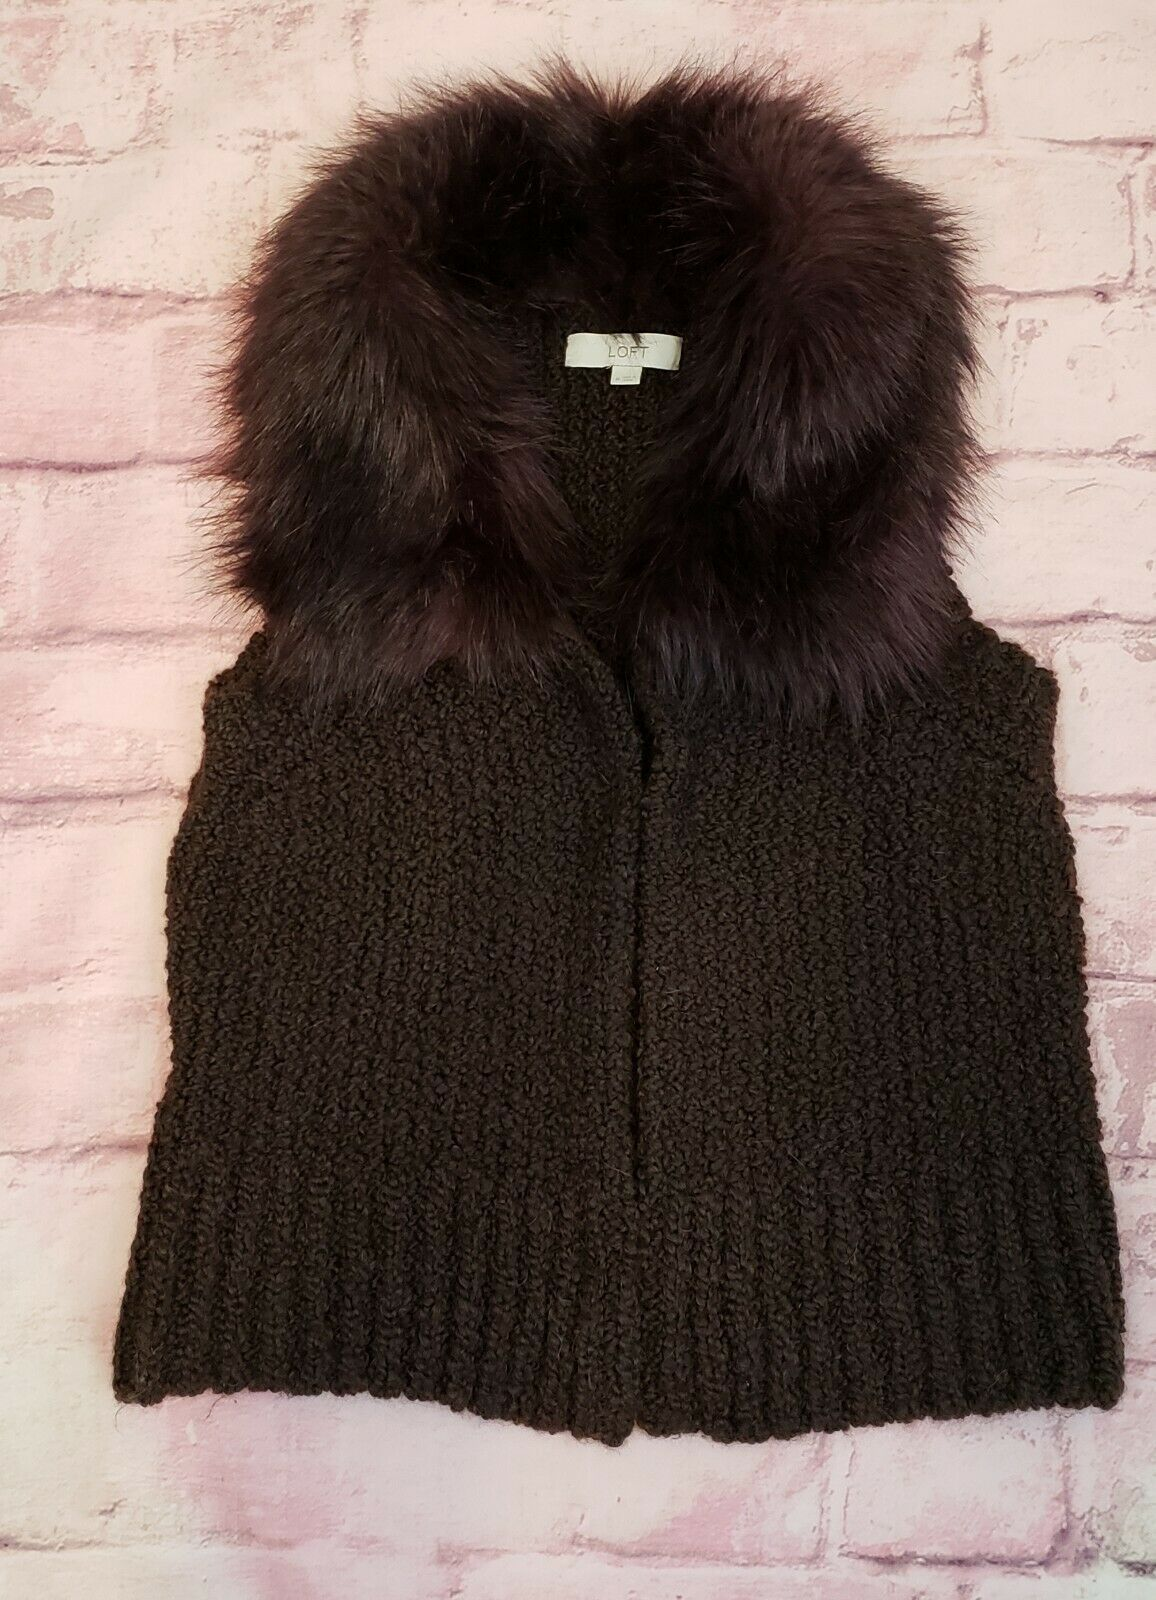 Ann Taylor Loft Womens Sweater Vest Alpaca/Mohair w/ Faux Fur Collar Brown Sz M image 2